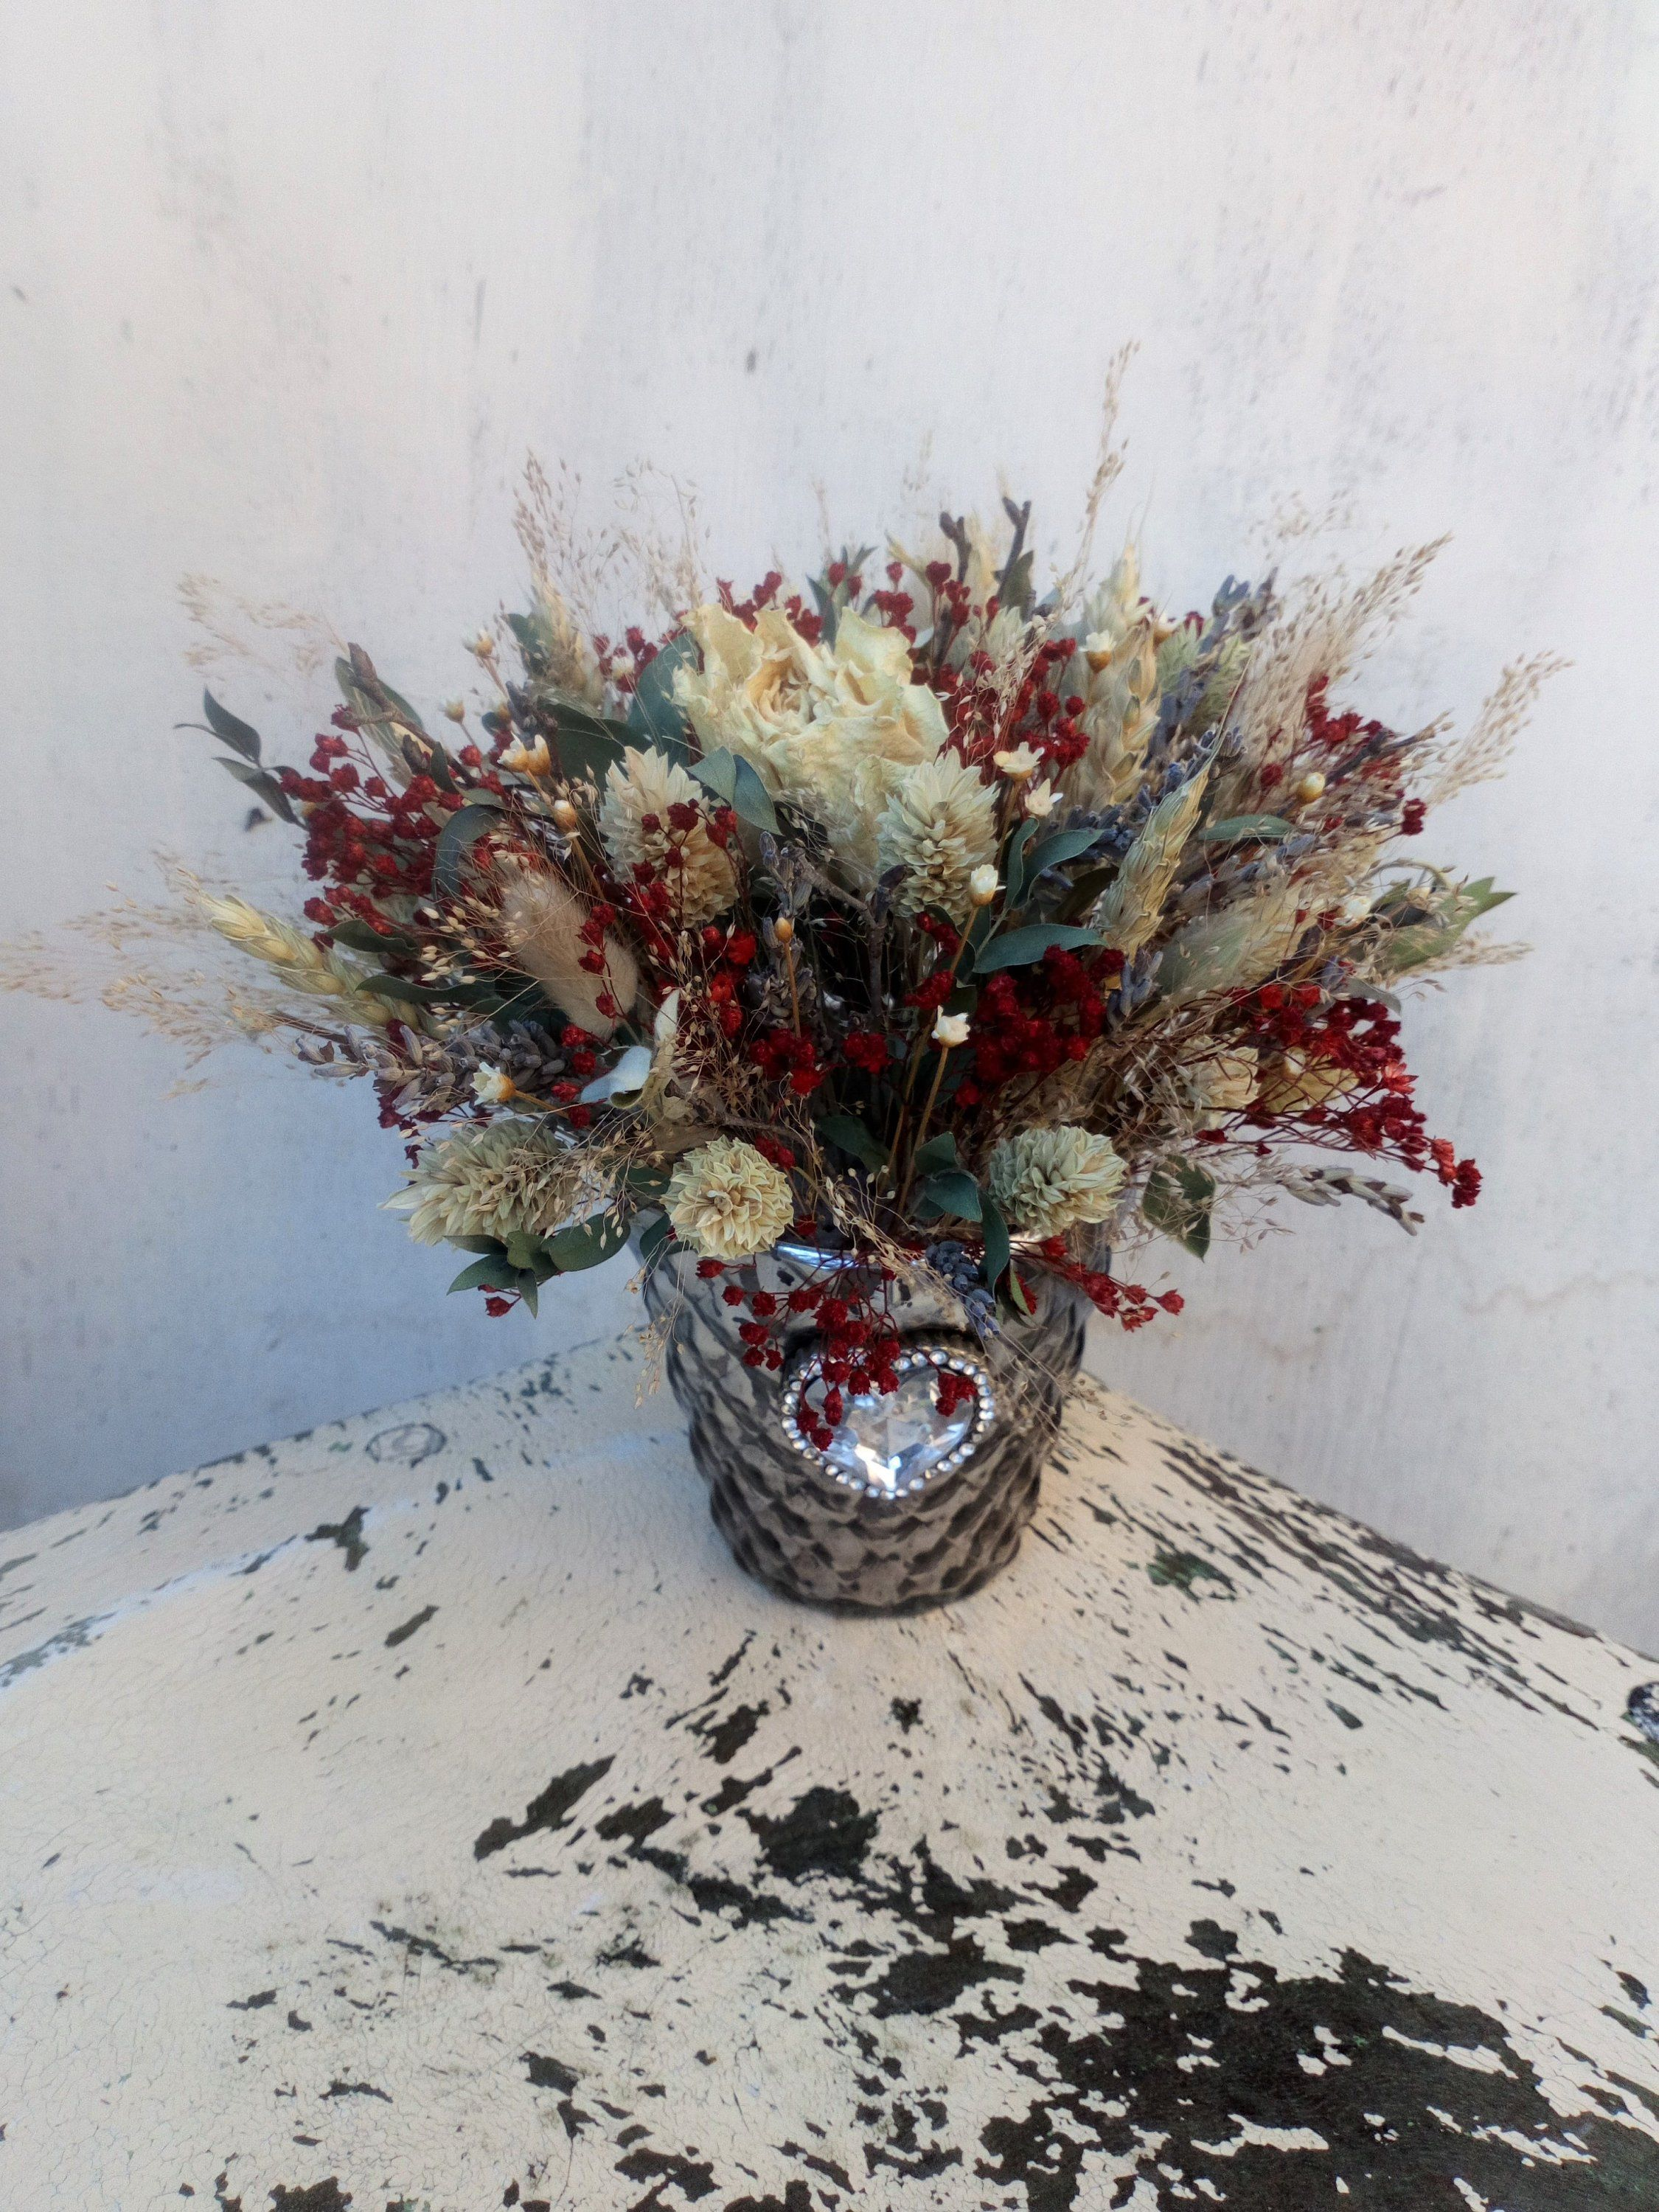 Christmas Dried Flower Arrangement Table Flowers Christmas Etsy Dried Flower Arrangements Flower Arrangements Dried Flowers